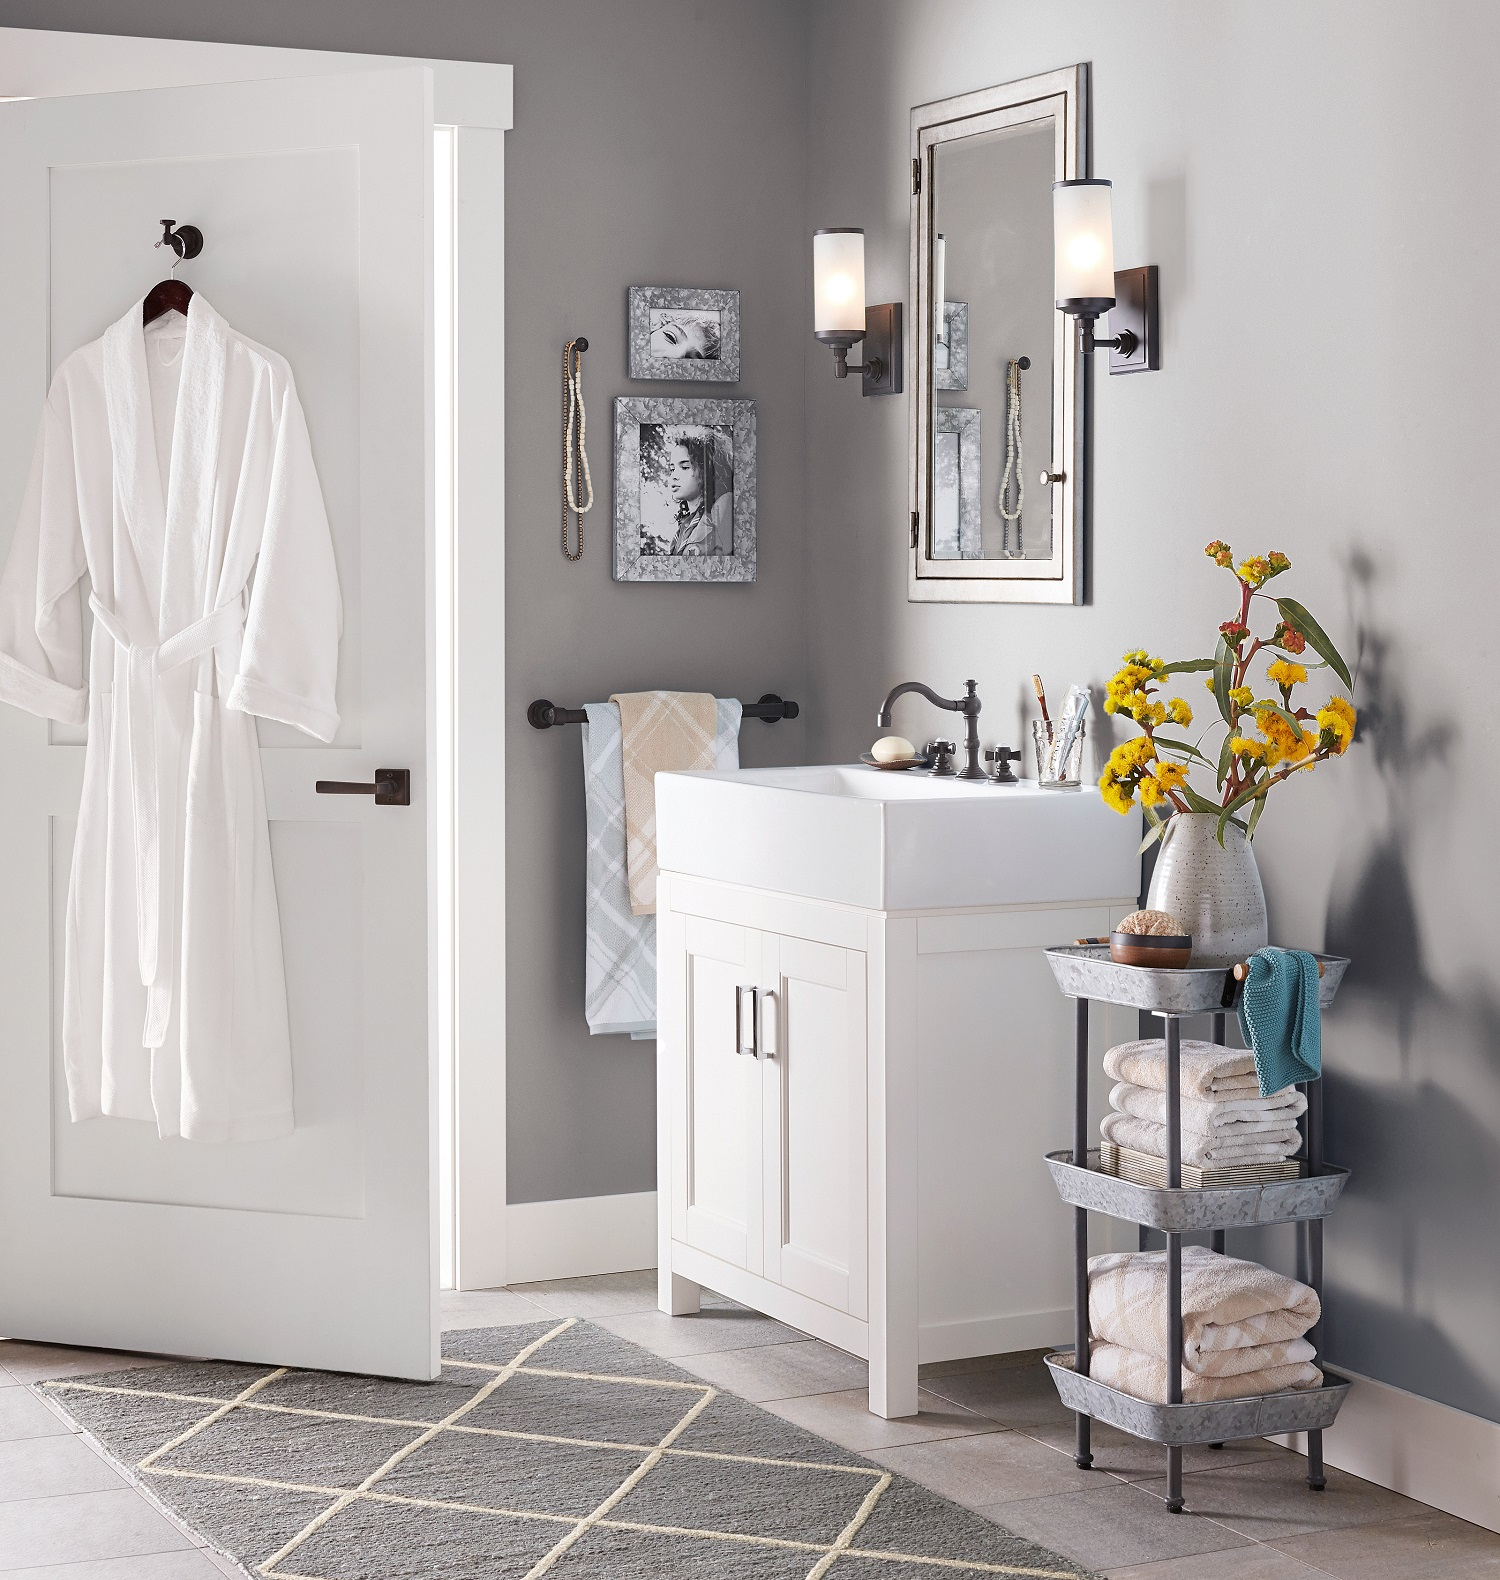 Renovating or adding a powder room? There are a lot of details to consider. Fixtures, space planning, color. Design element for this small bath is Pottery Barn's modern farmhouse sink. Photo: Pottery Barn.